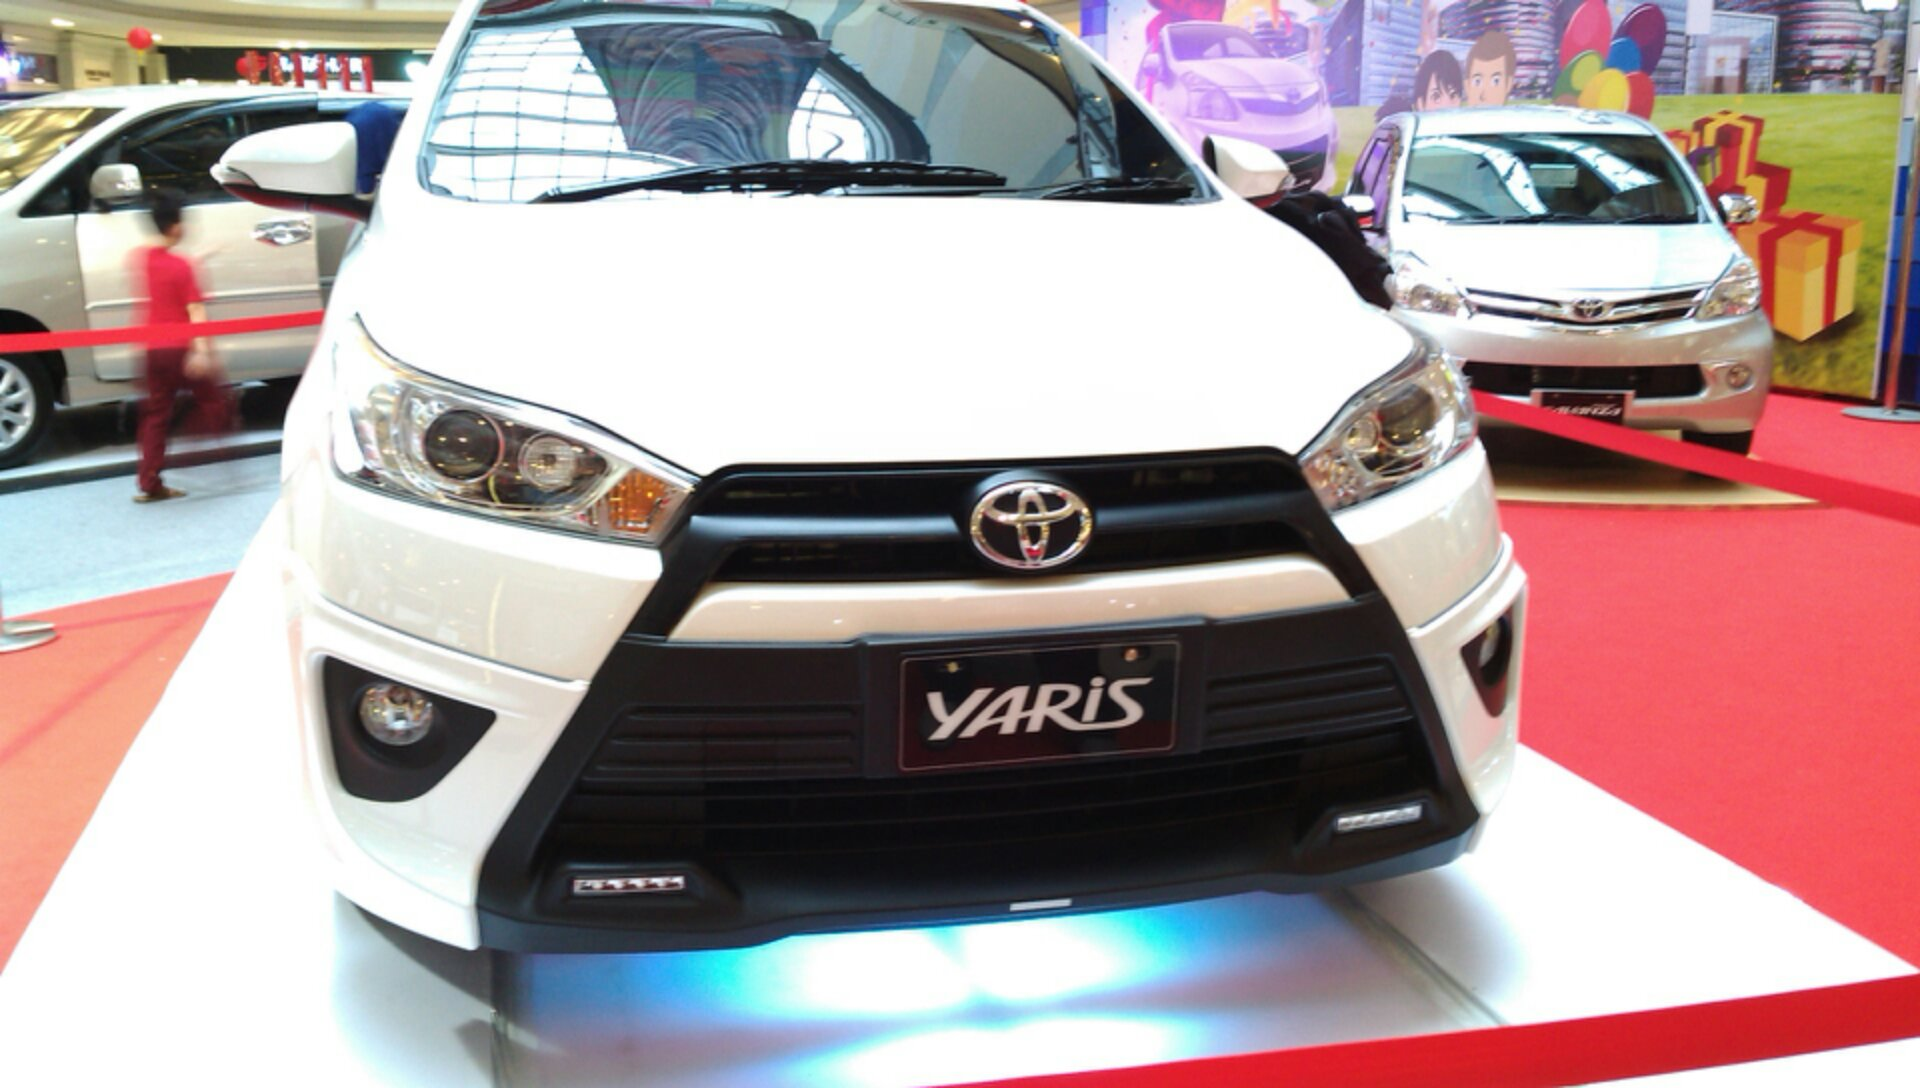 new yaris trd all kijang innova 2017 toyota sportivo 2014 ototrends